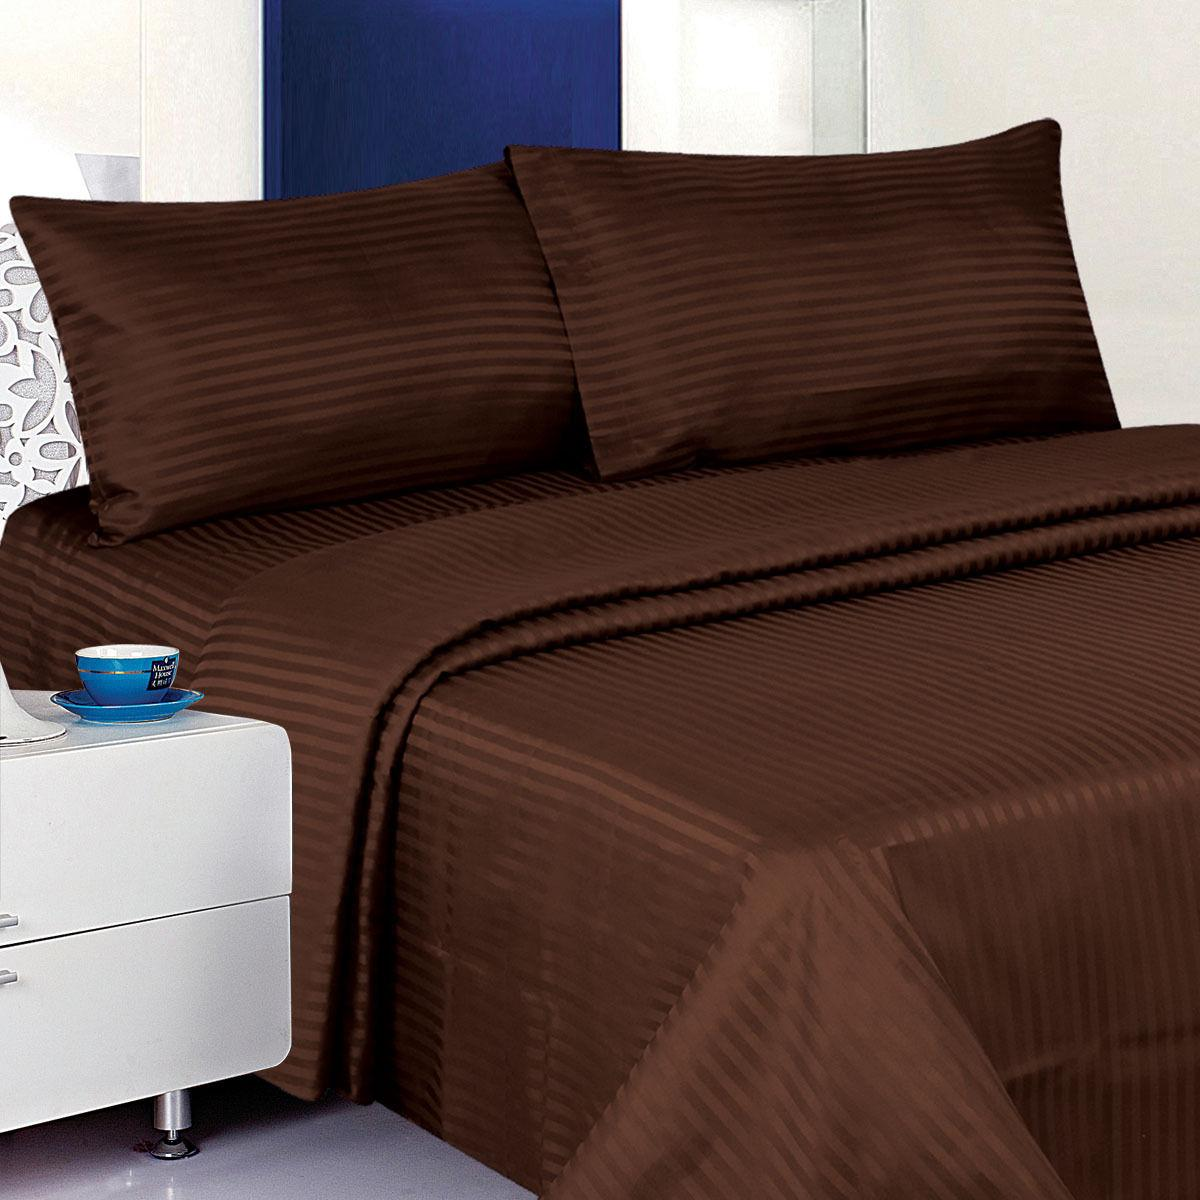 1800 Count Bed Set Twin-Full-Queen-King